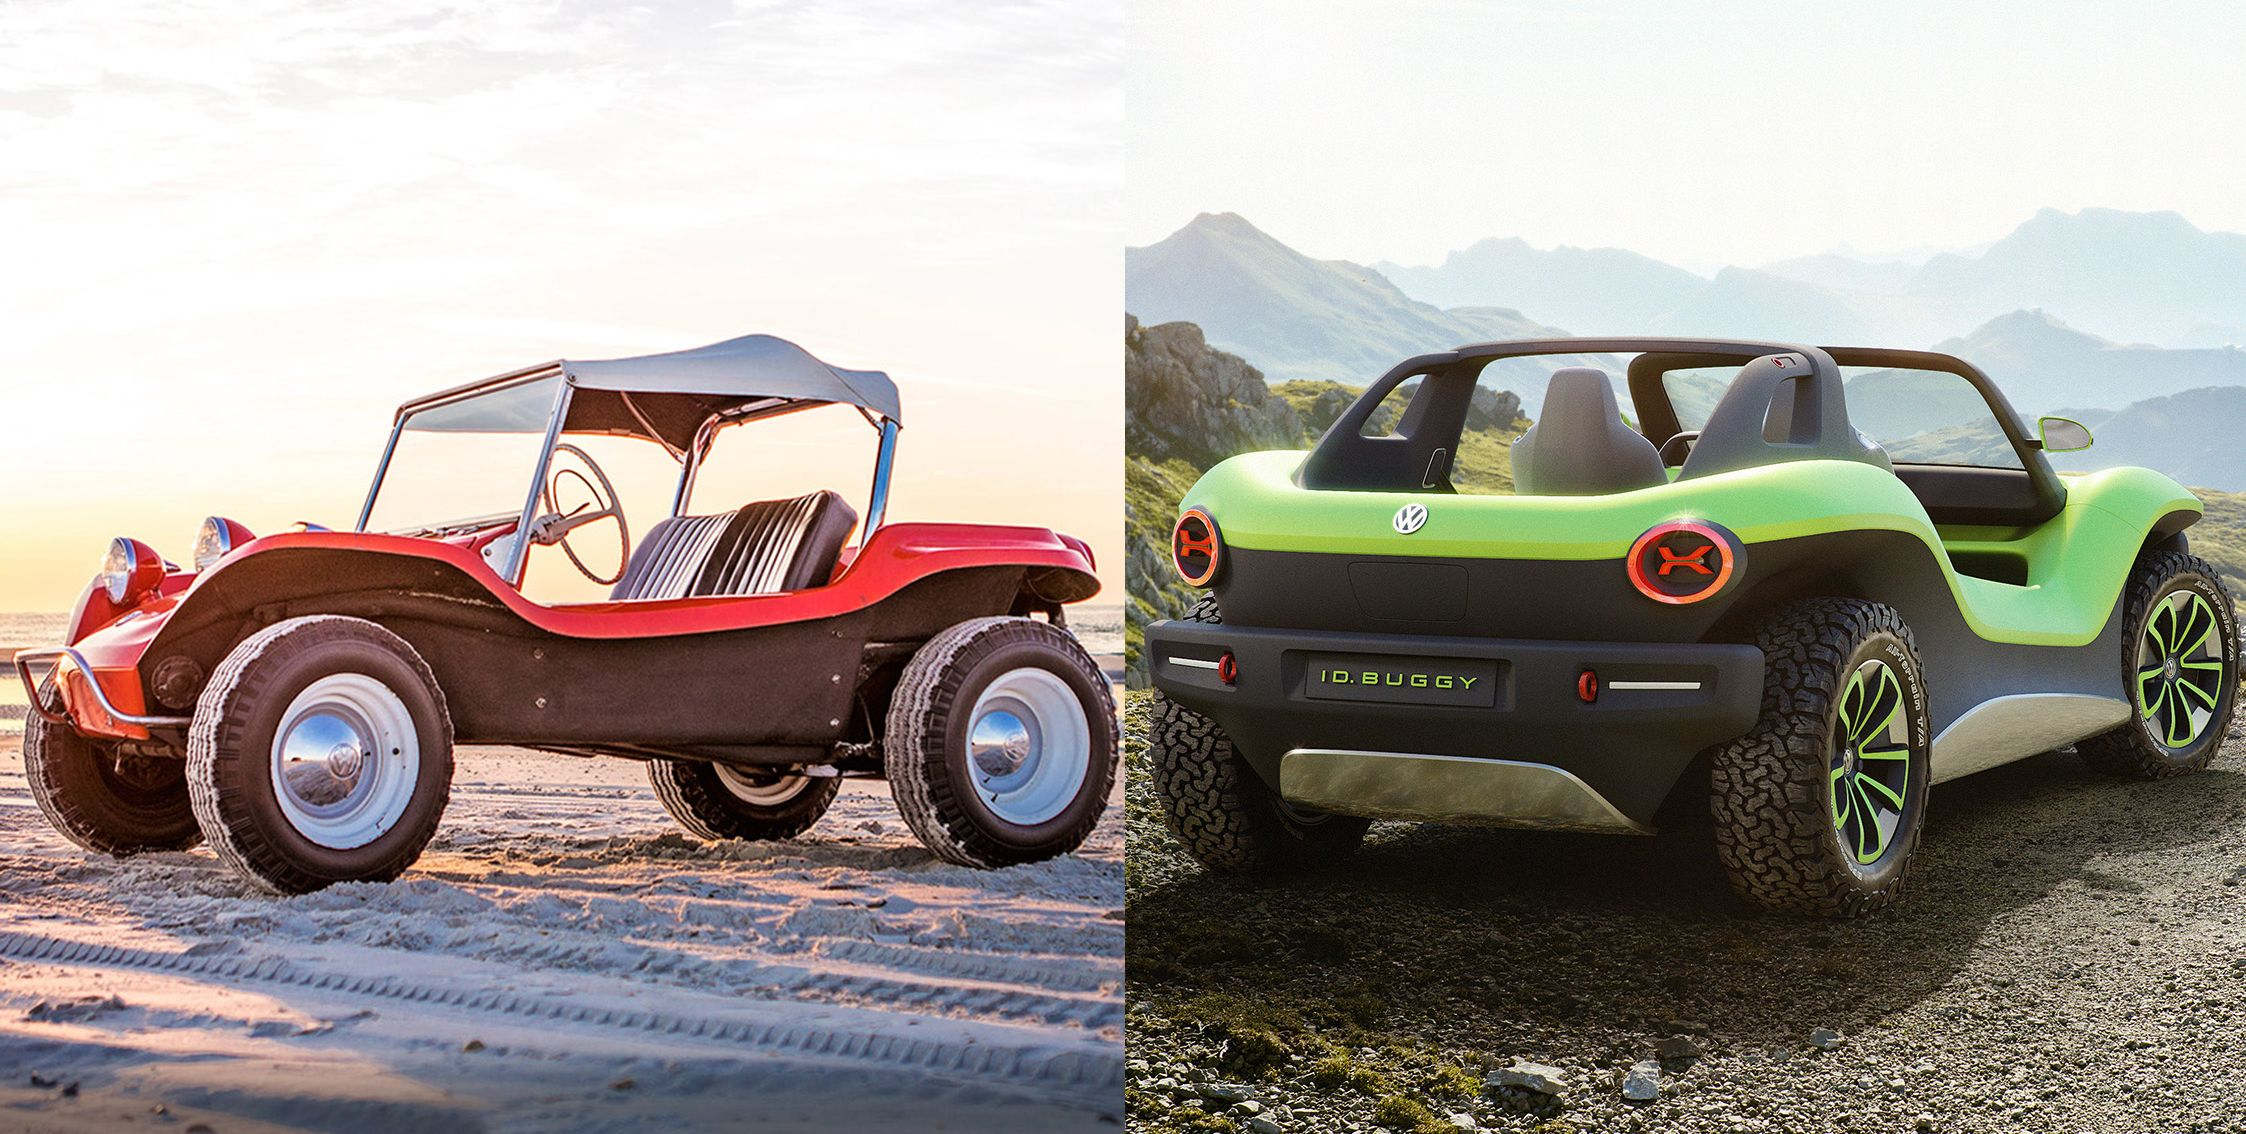 If You Loved the Meyers Manx in the '60s, You'd Really Dig the Volkswagen I.D. Buggy in the '20s